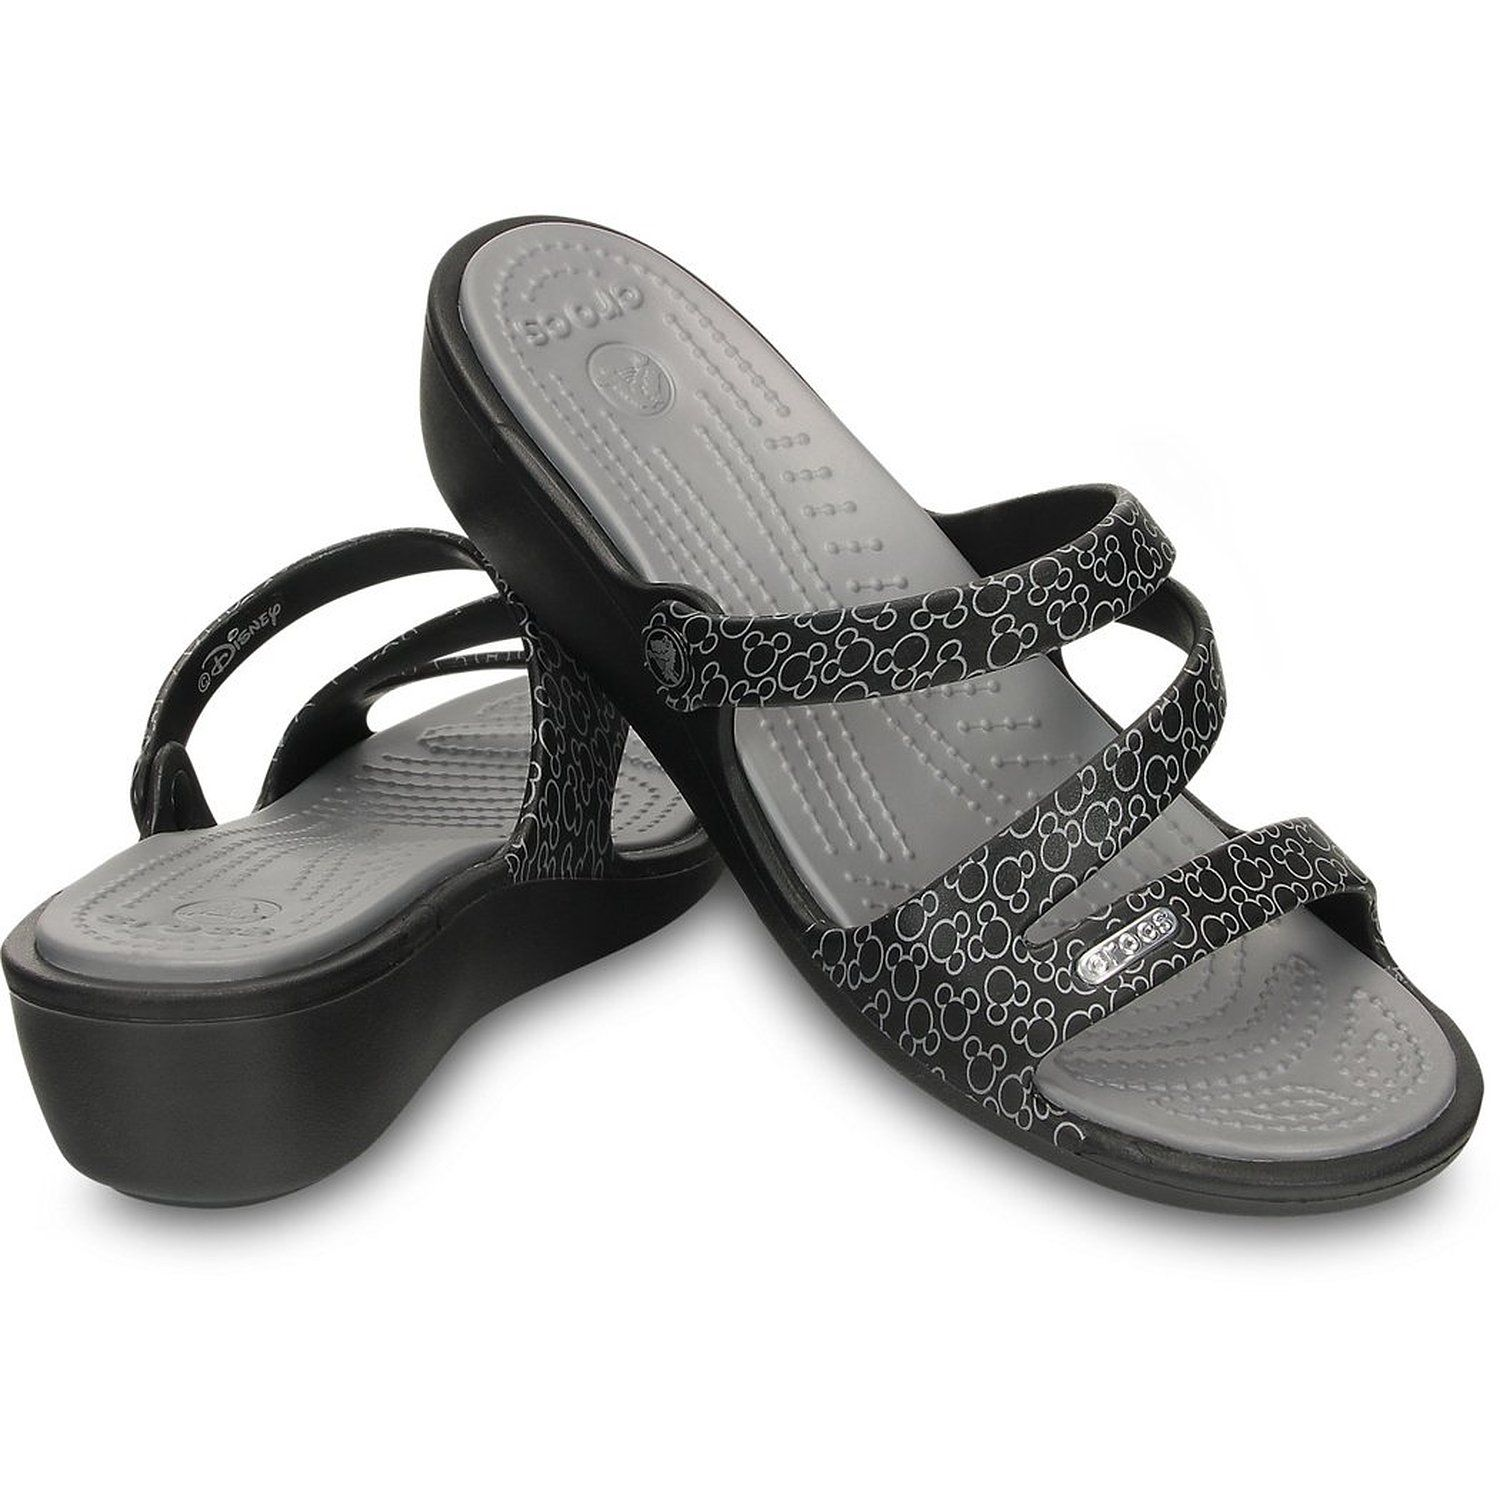 Crocs Crocs Women S Sandals Patricia Mickey Black Silver Review More Details Here Wedge Sandals Crocs Womens Sandals Sandals Womens Sandals Wedges